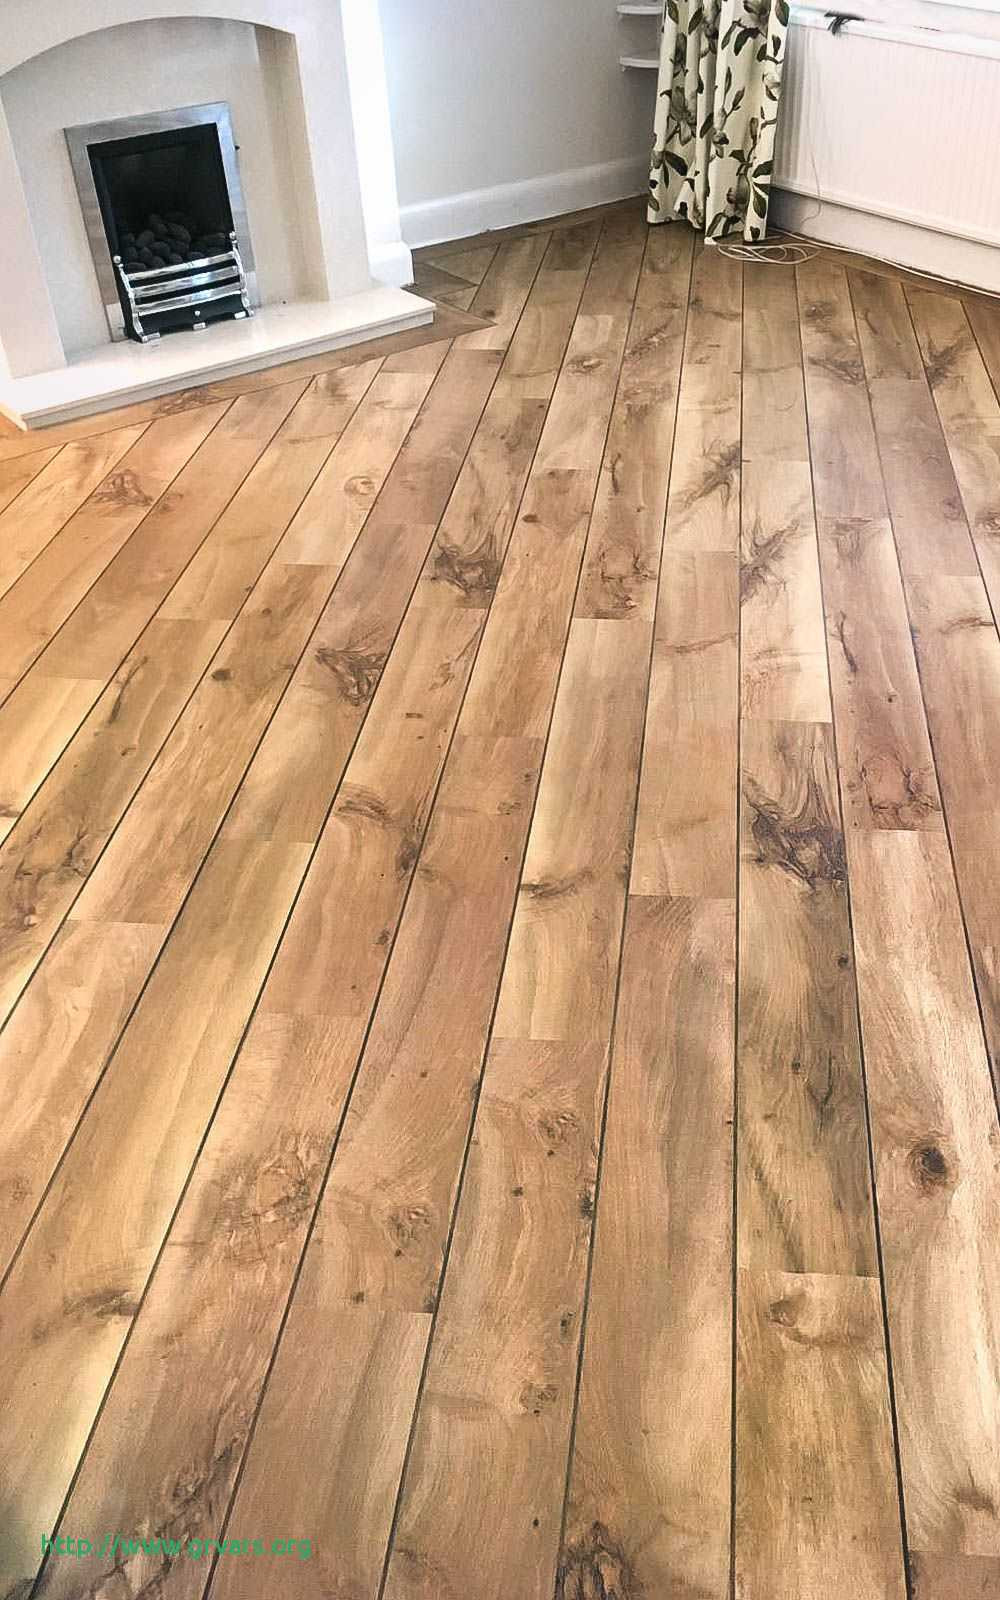 Hardwood Flooring Langley Of 16 Frais Karndean Flooring Installation Instructions Ideas Blog Throughout Karndean Flooring Installation Instructions Inspirant Recently Pleted Living Room with Karndean Designflooring Van Gogh